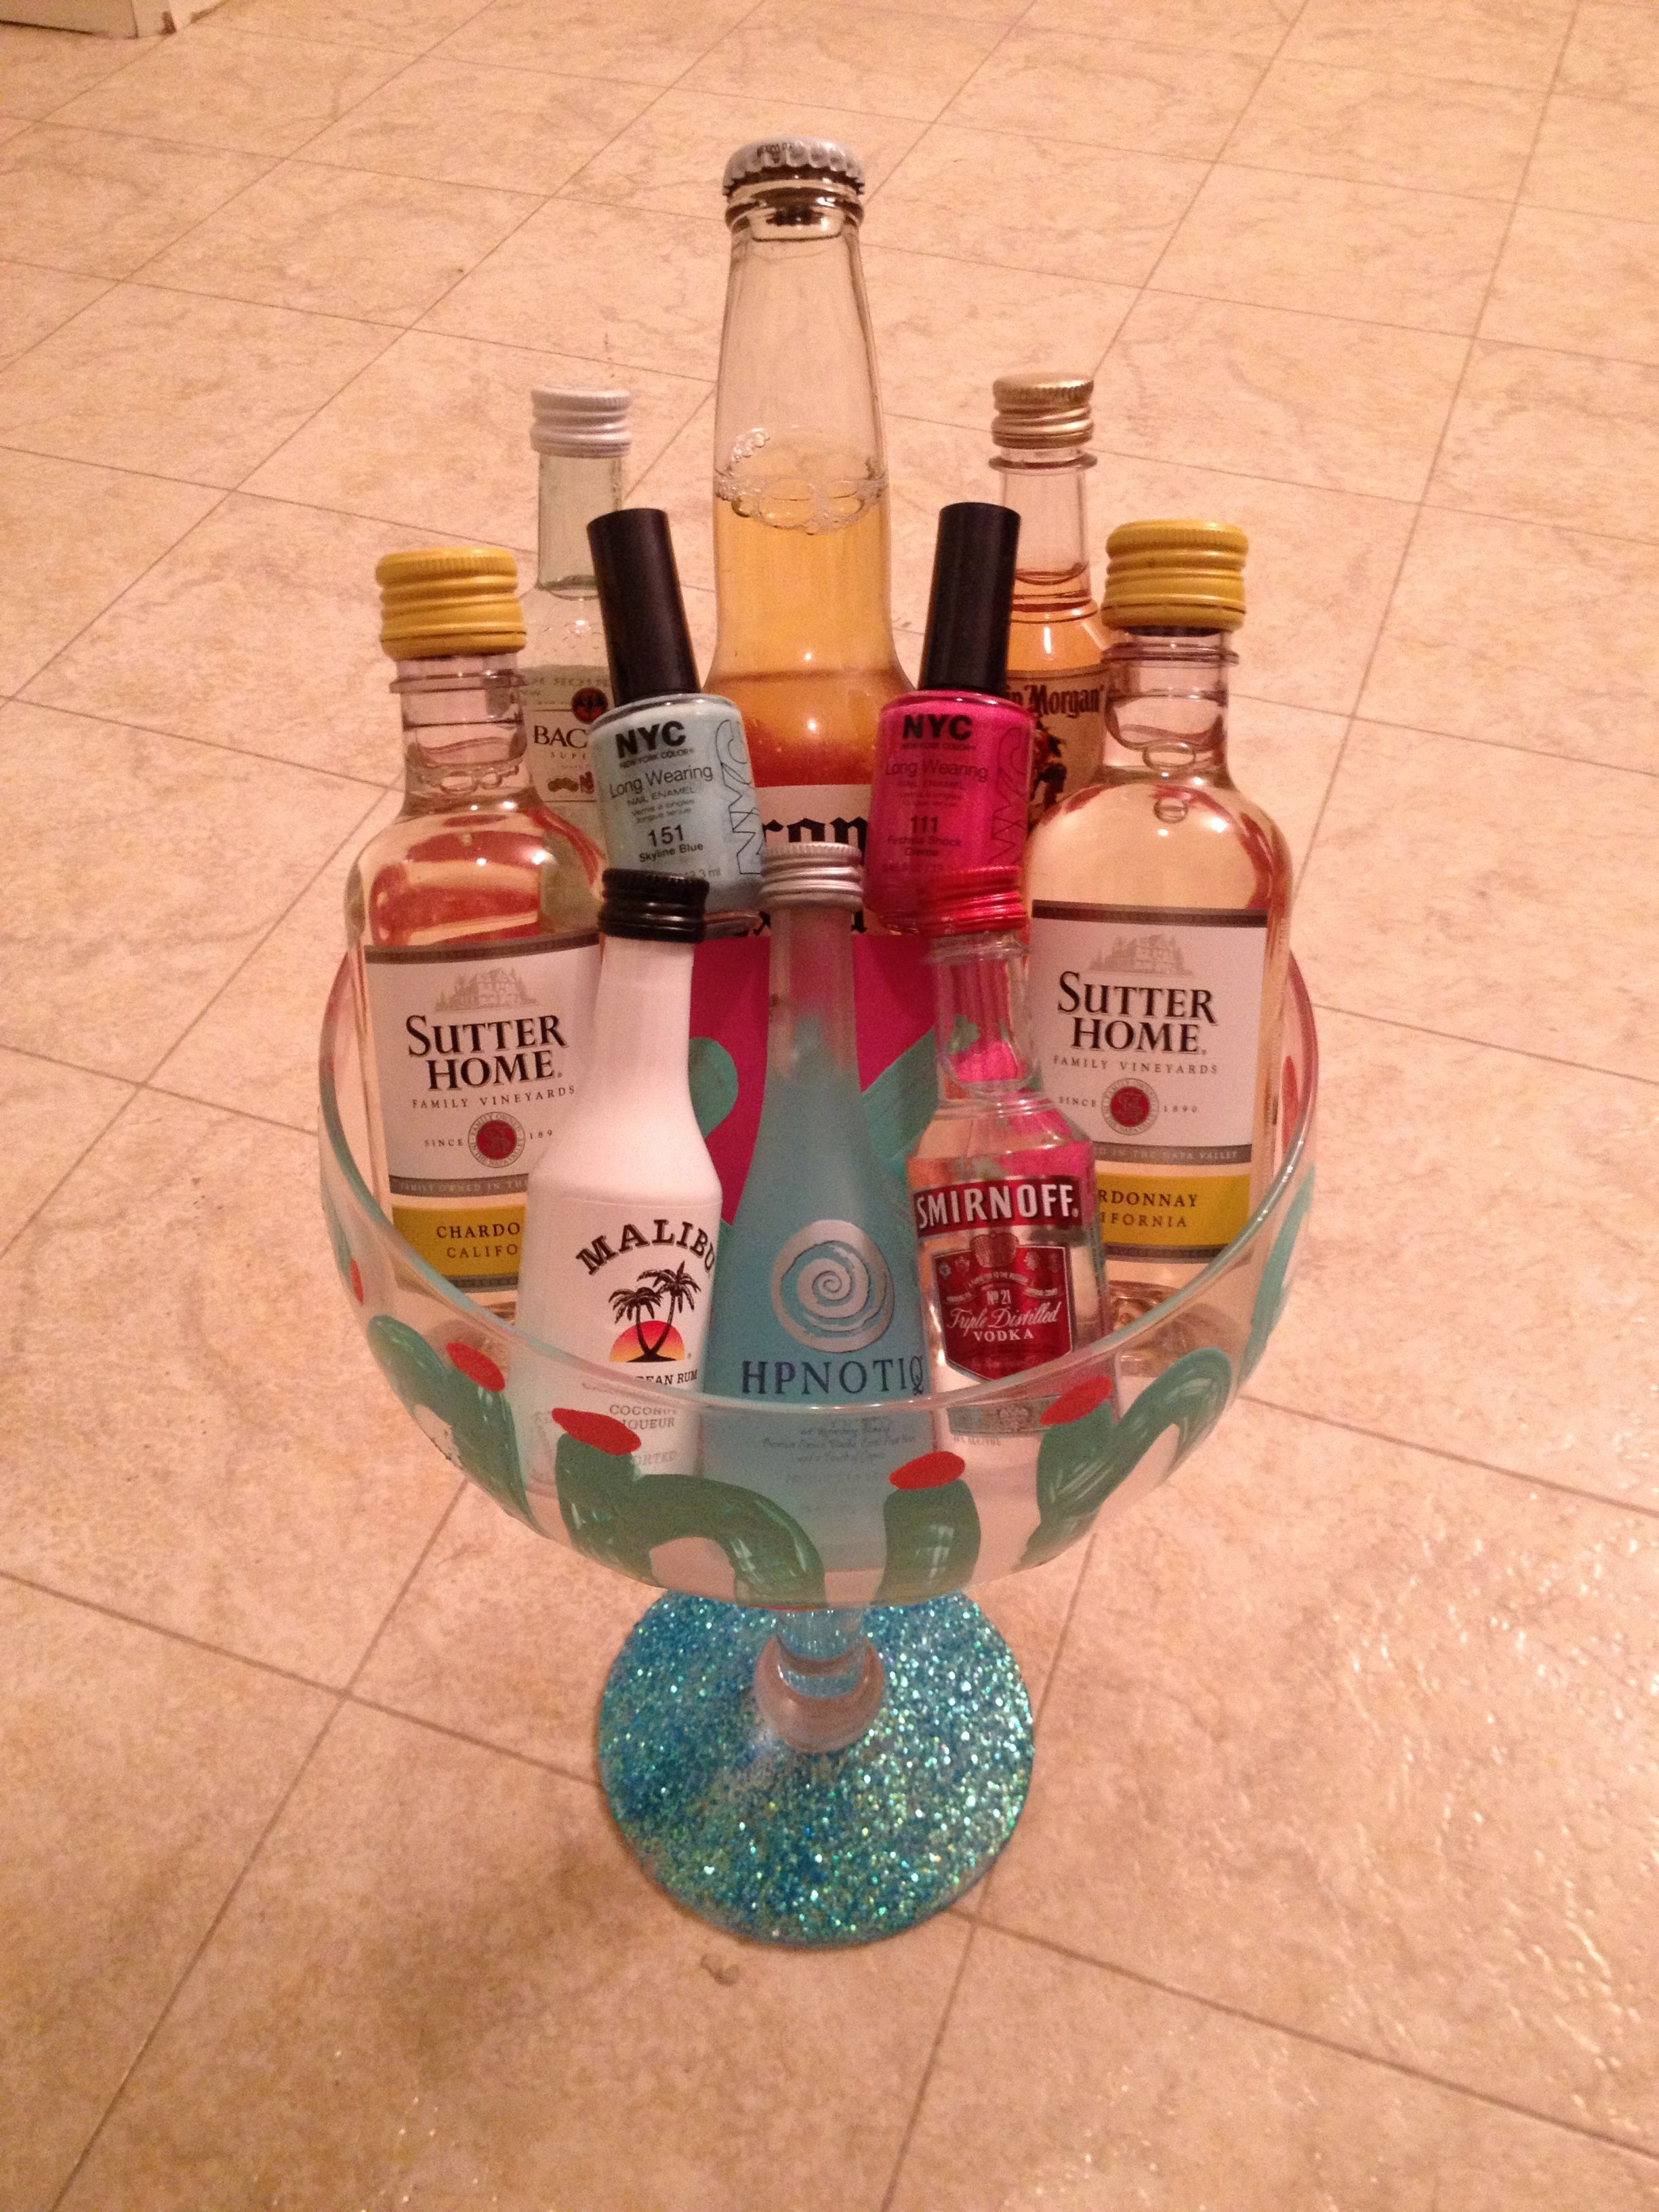 21st birthday gift this would be a cool idea too